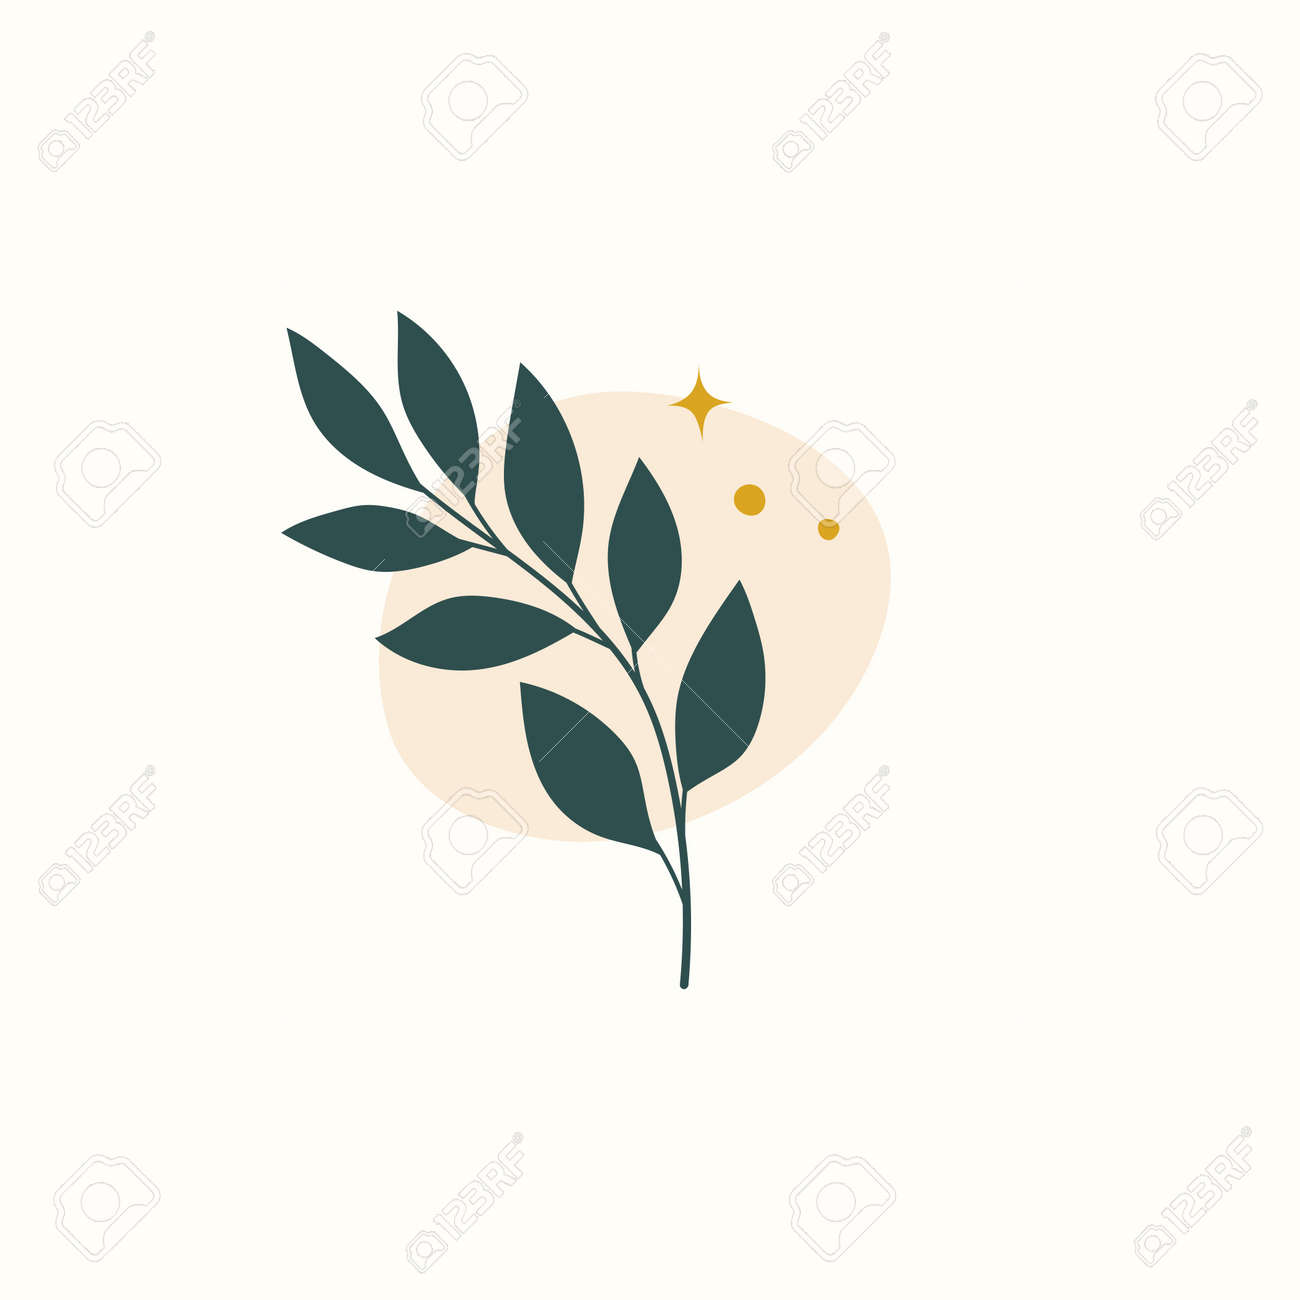 Vector modern floral arrangement background. Cute delicate botanical illustration with leaves and plants. - 168265096